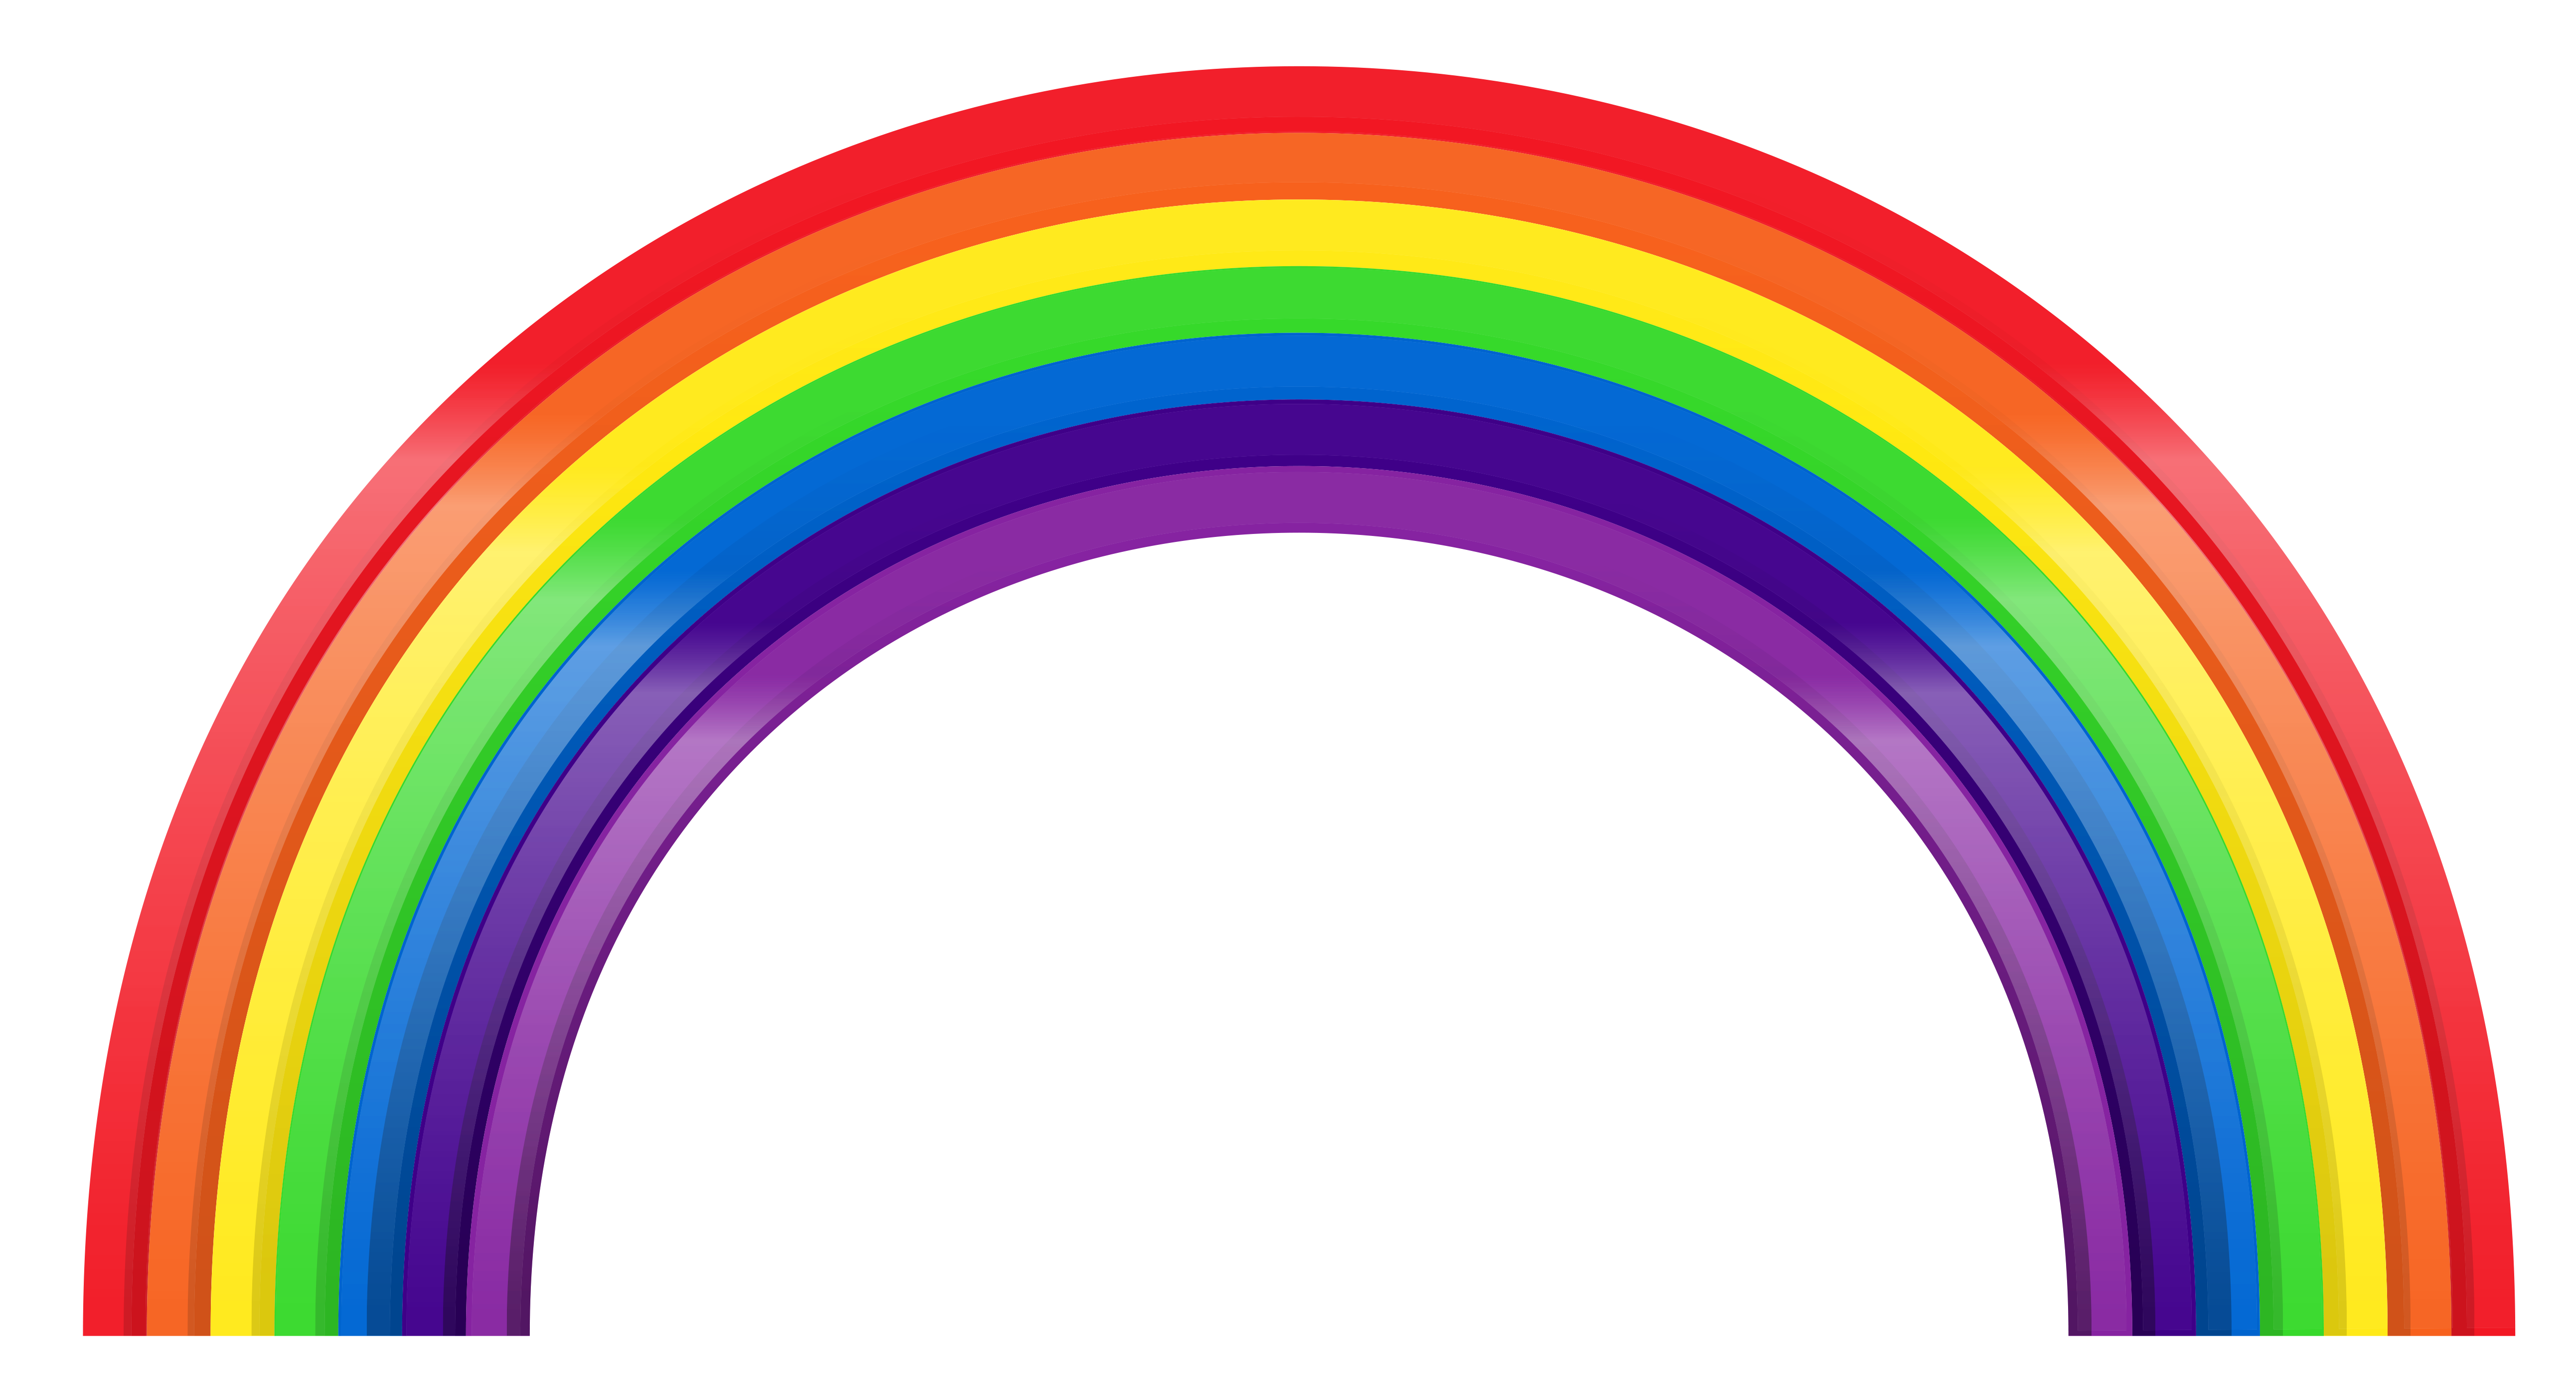 Library of transparent background rainbow clipart ...